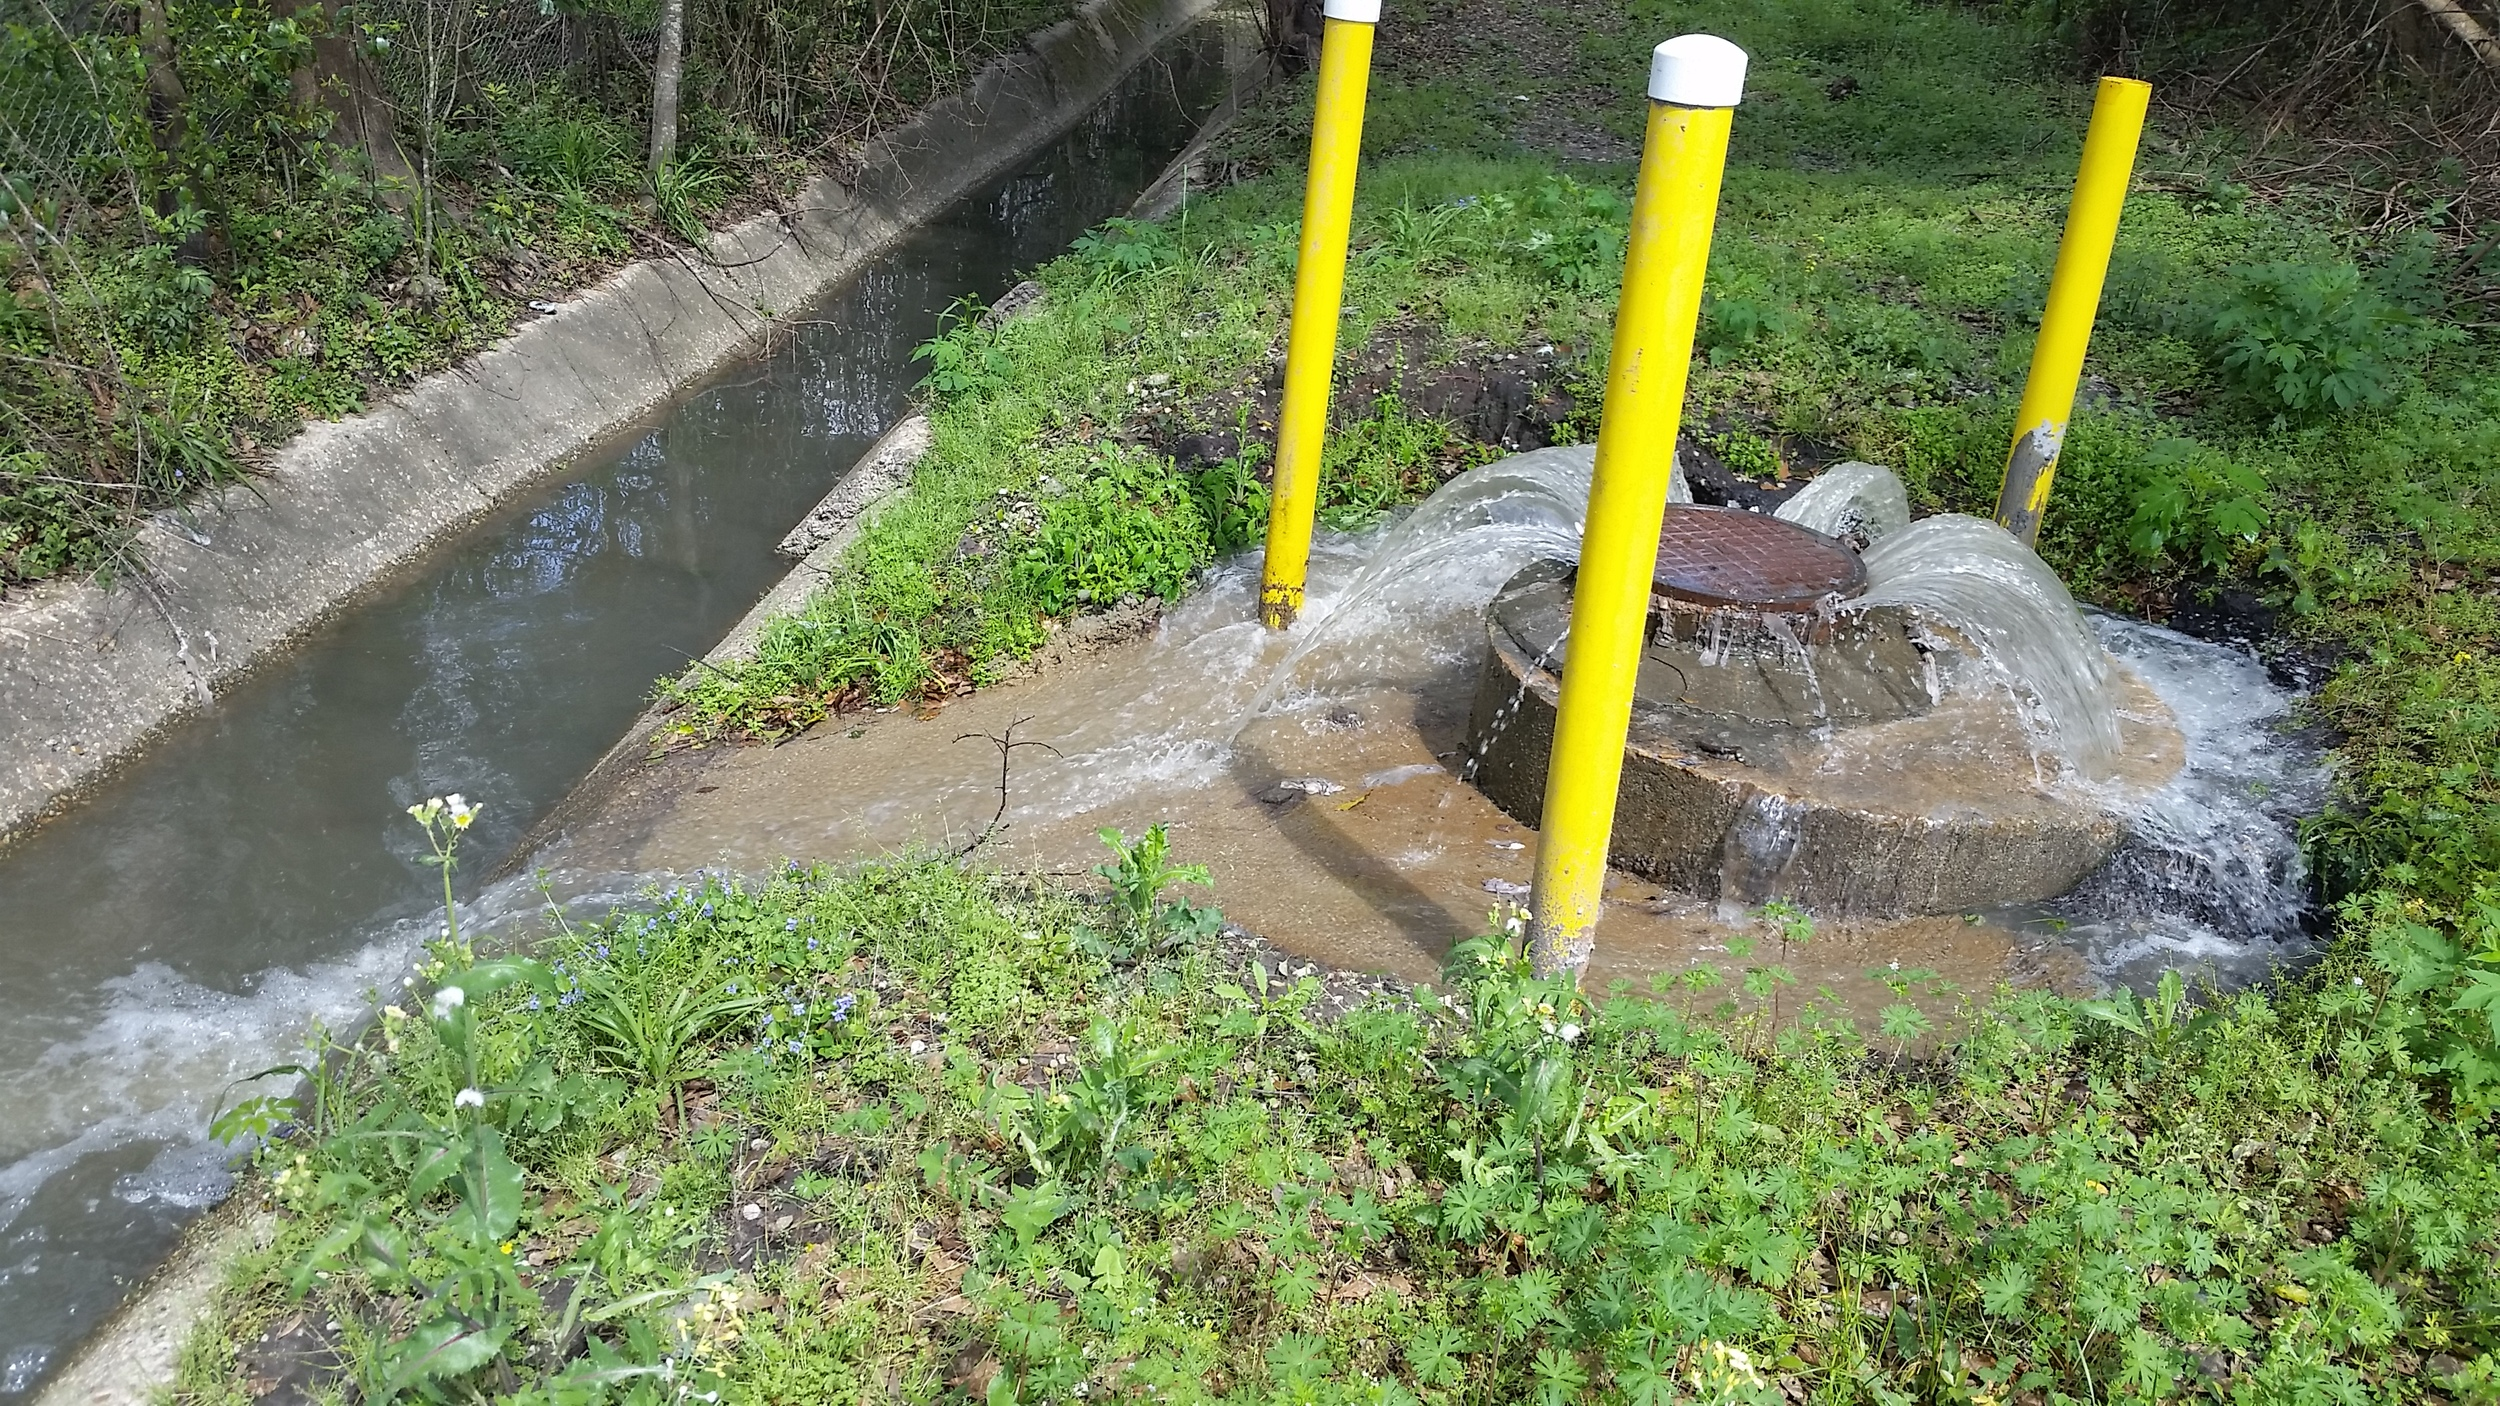 A sanitary sewer overflows near Three Mile Creek in Mobile.